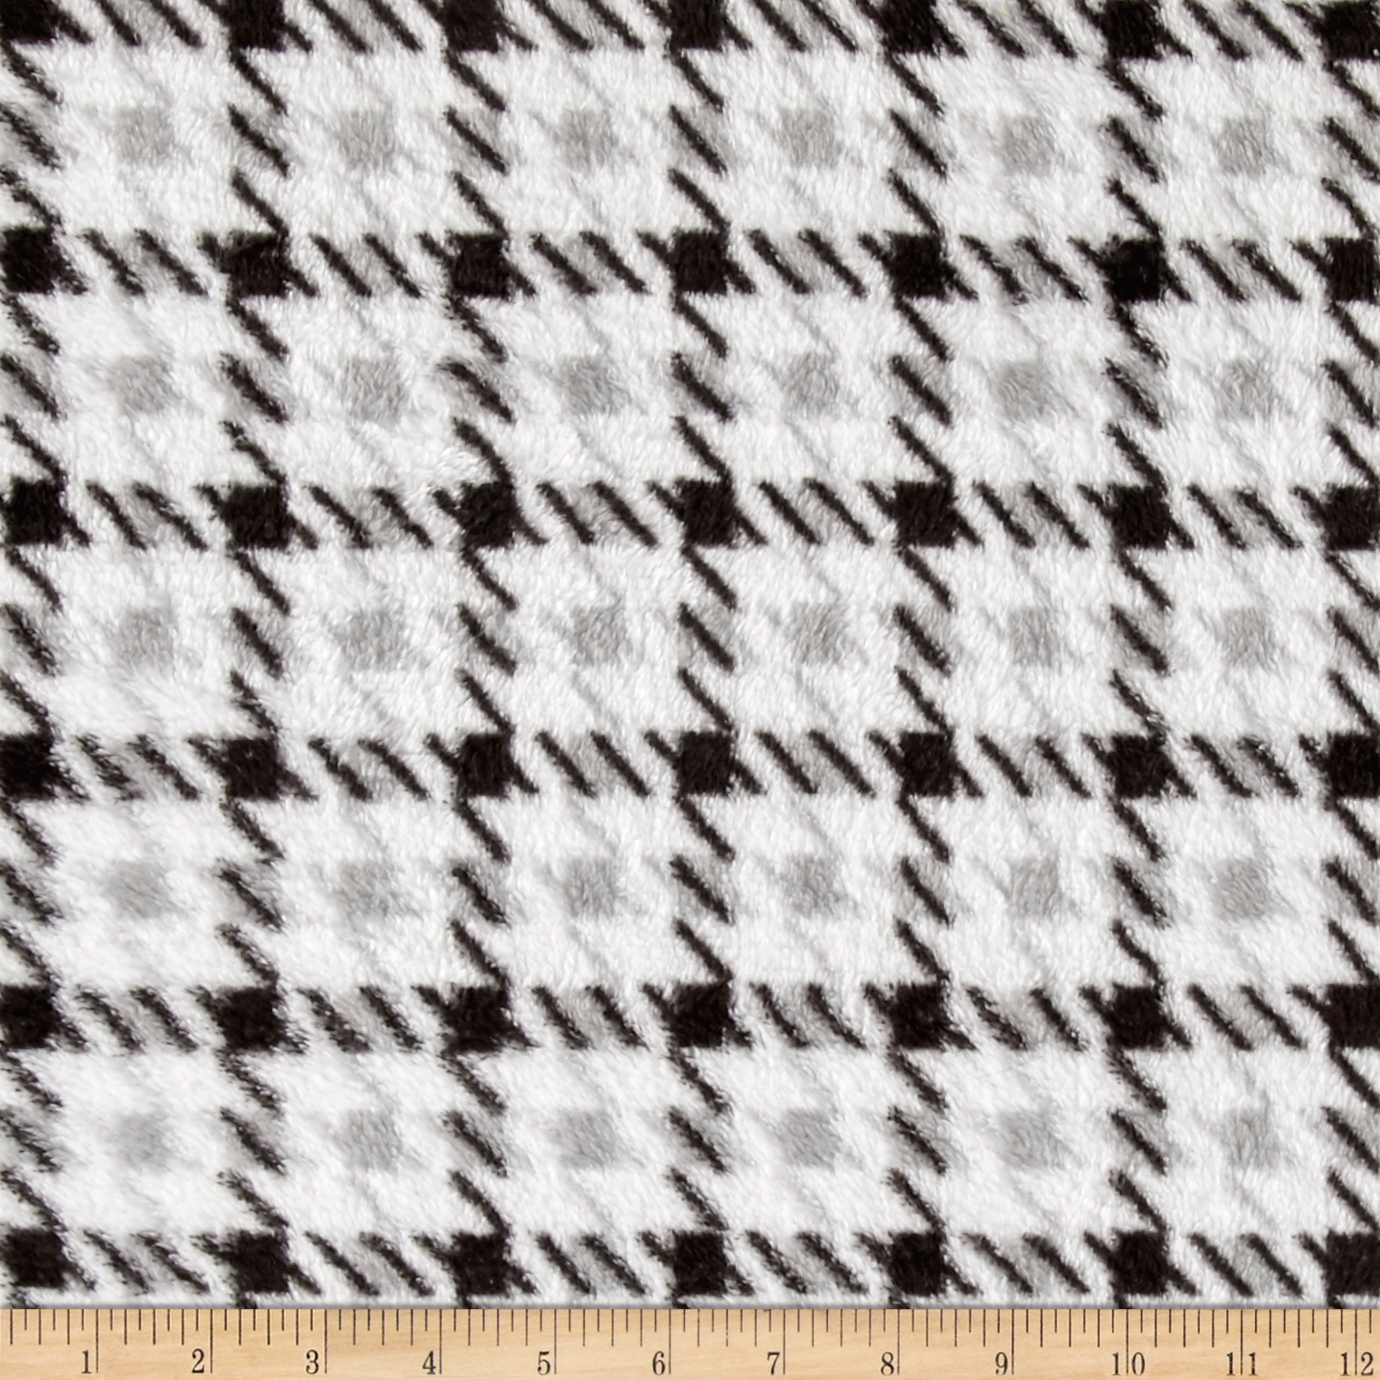 Whisper Plush Fleece Houndstooth Black/White Fabric by Newcastle in USA